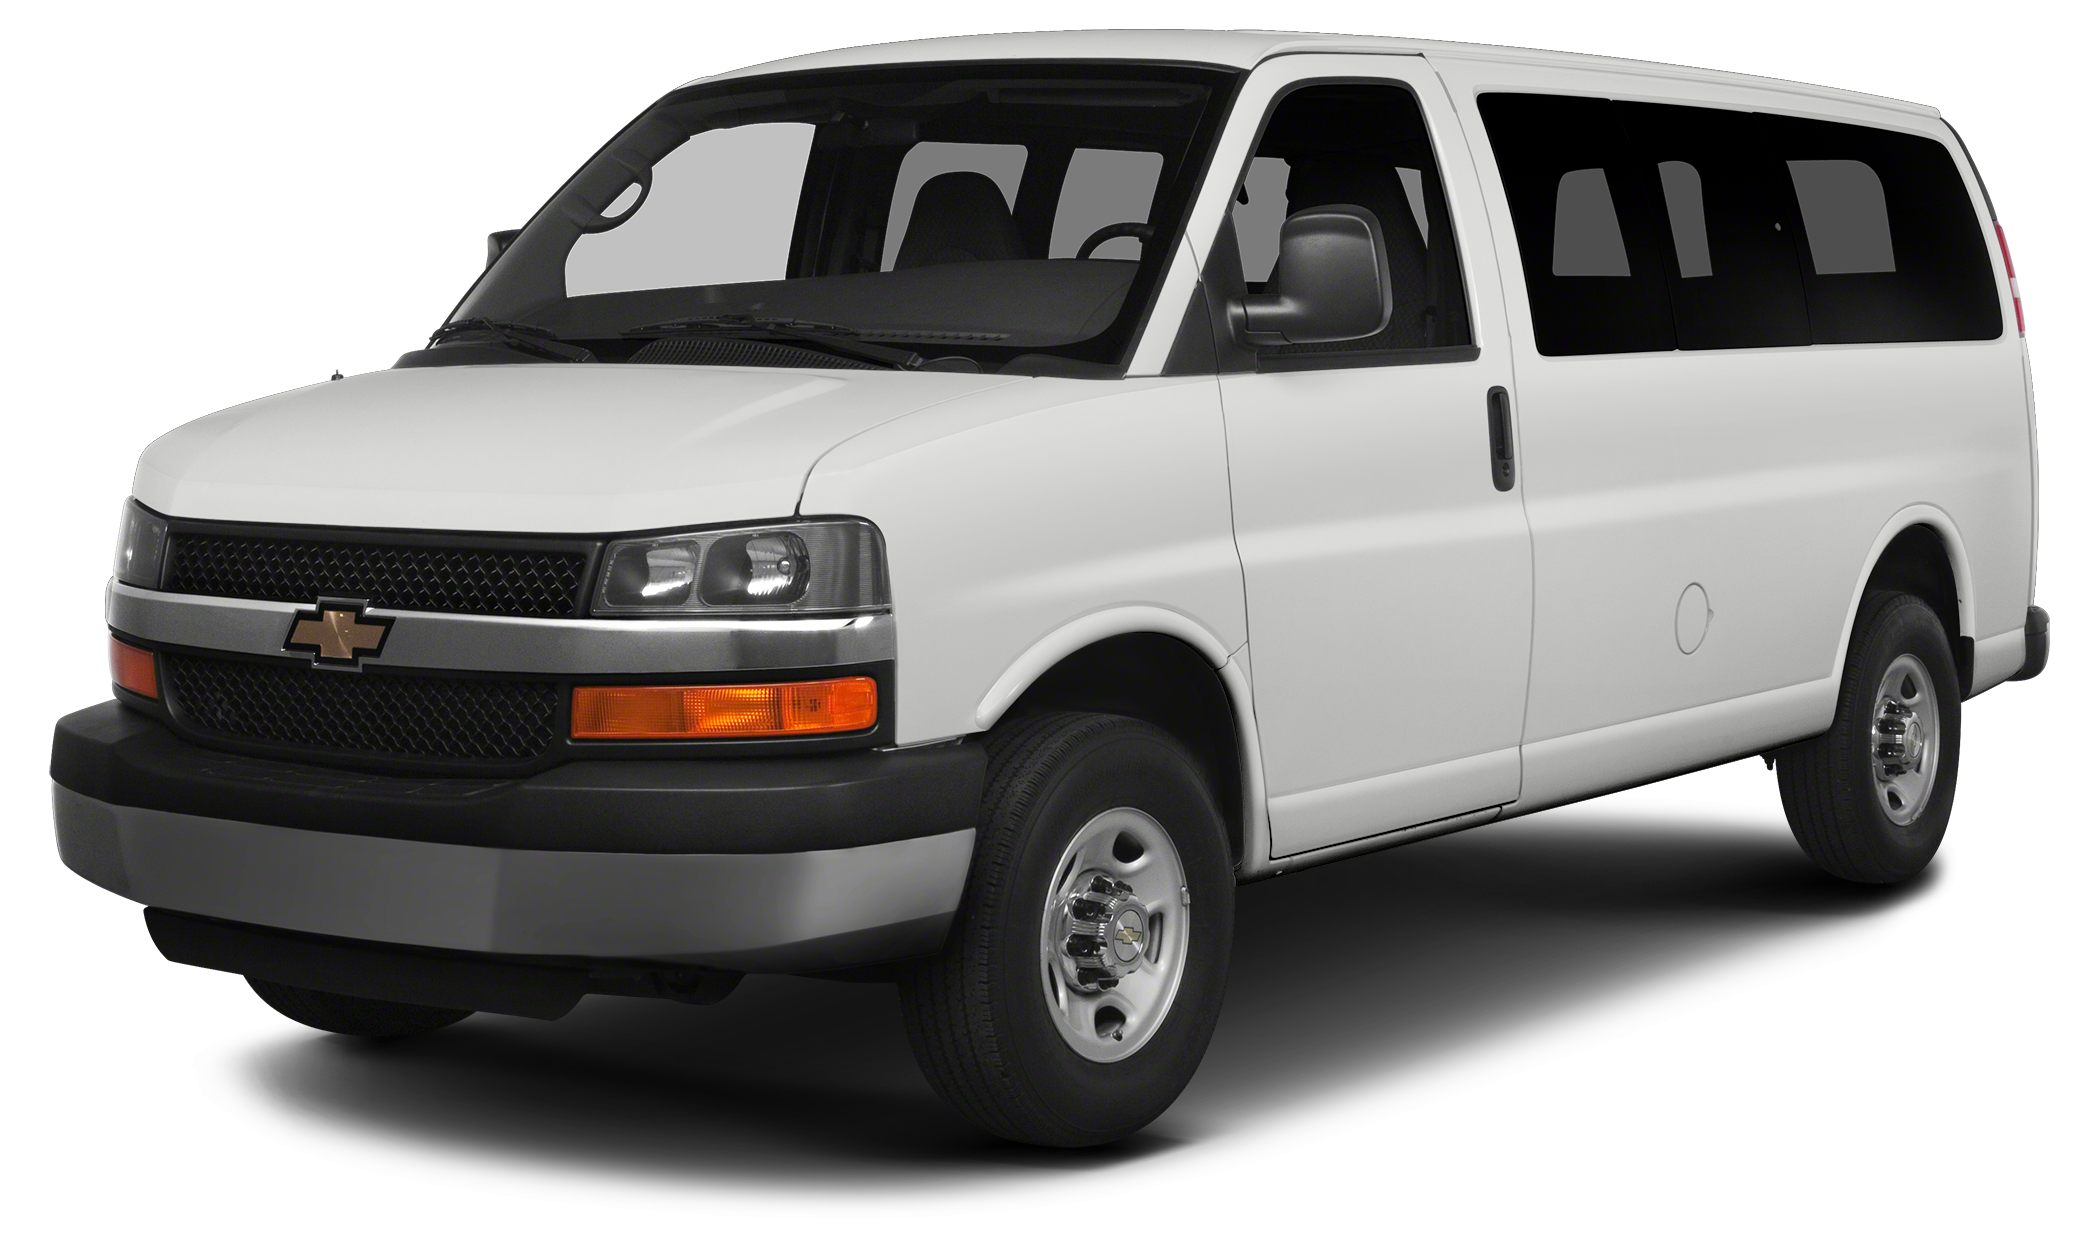 2014 Chevrolet Express 3500 LS w1LS LS trim 3rd Row Seat SEATING 15-PASSENGER 2-3-3-3-4 SEAT